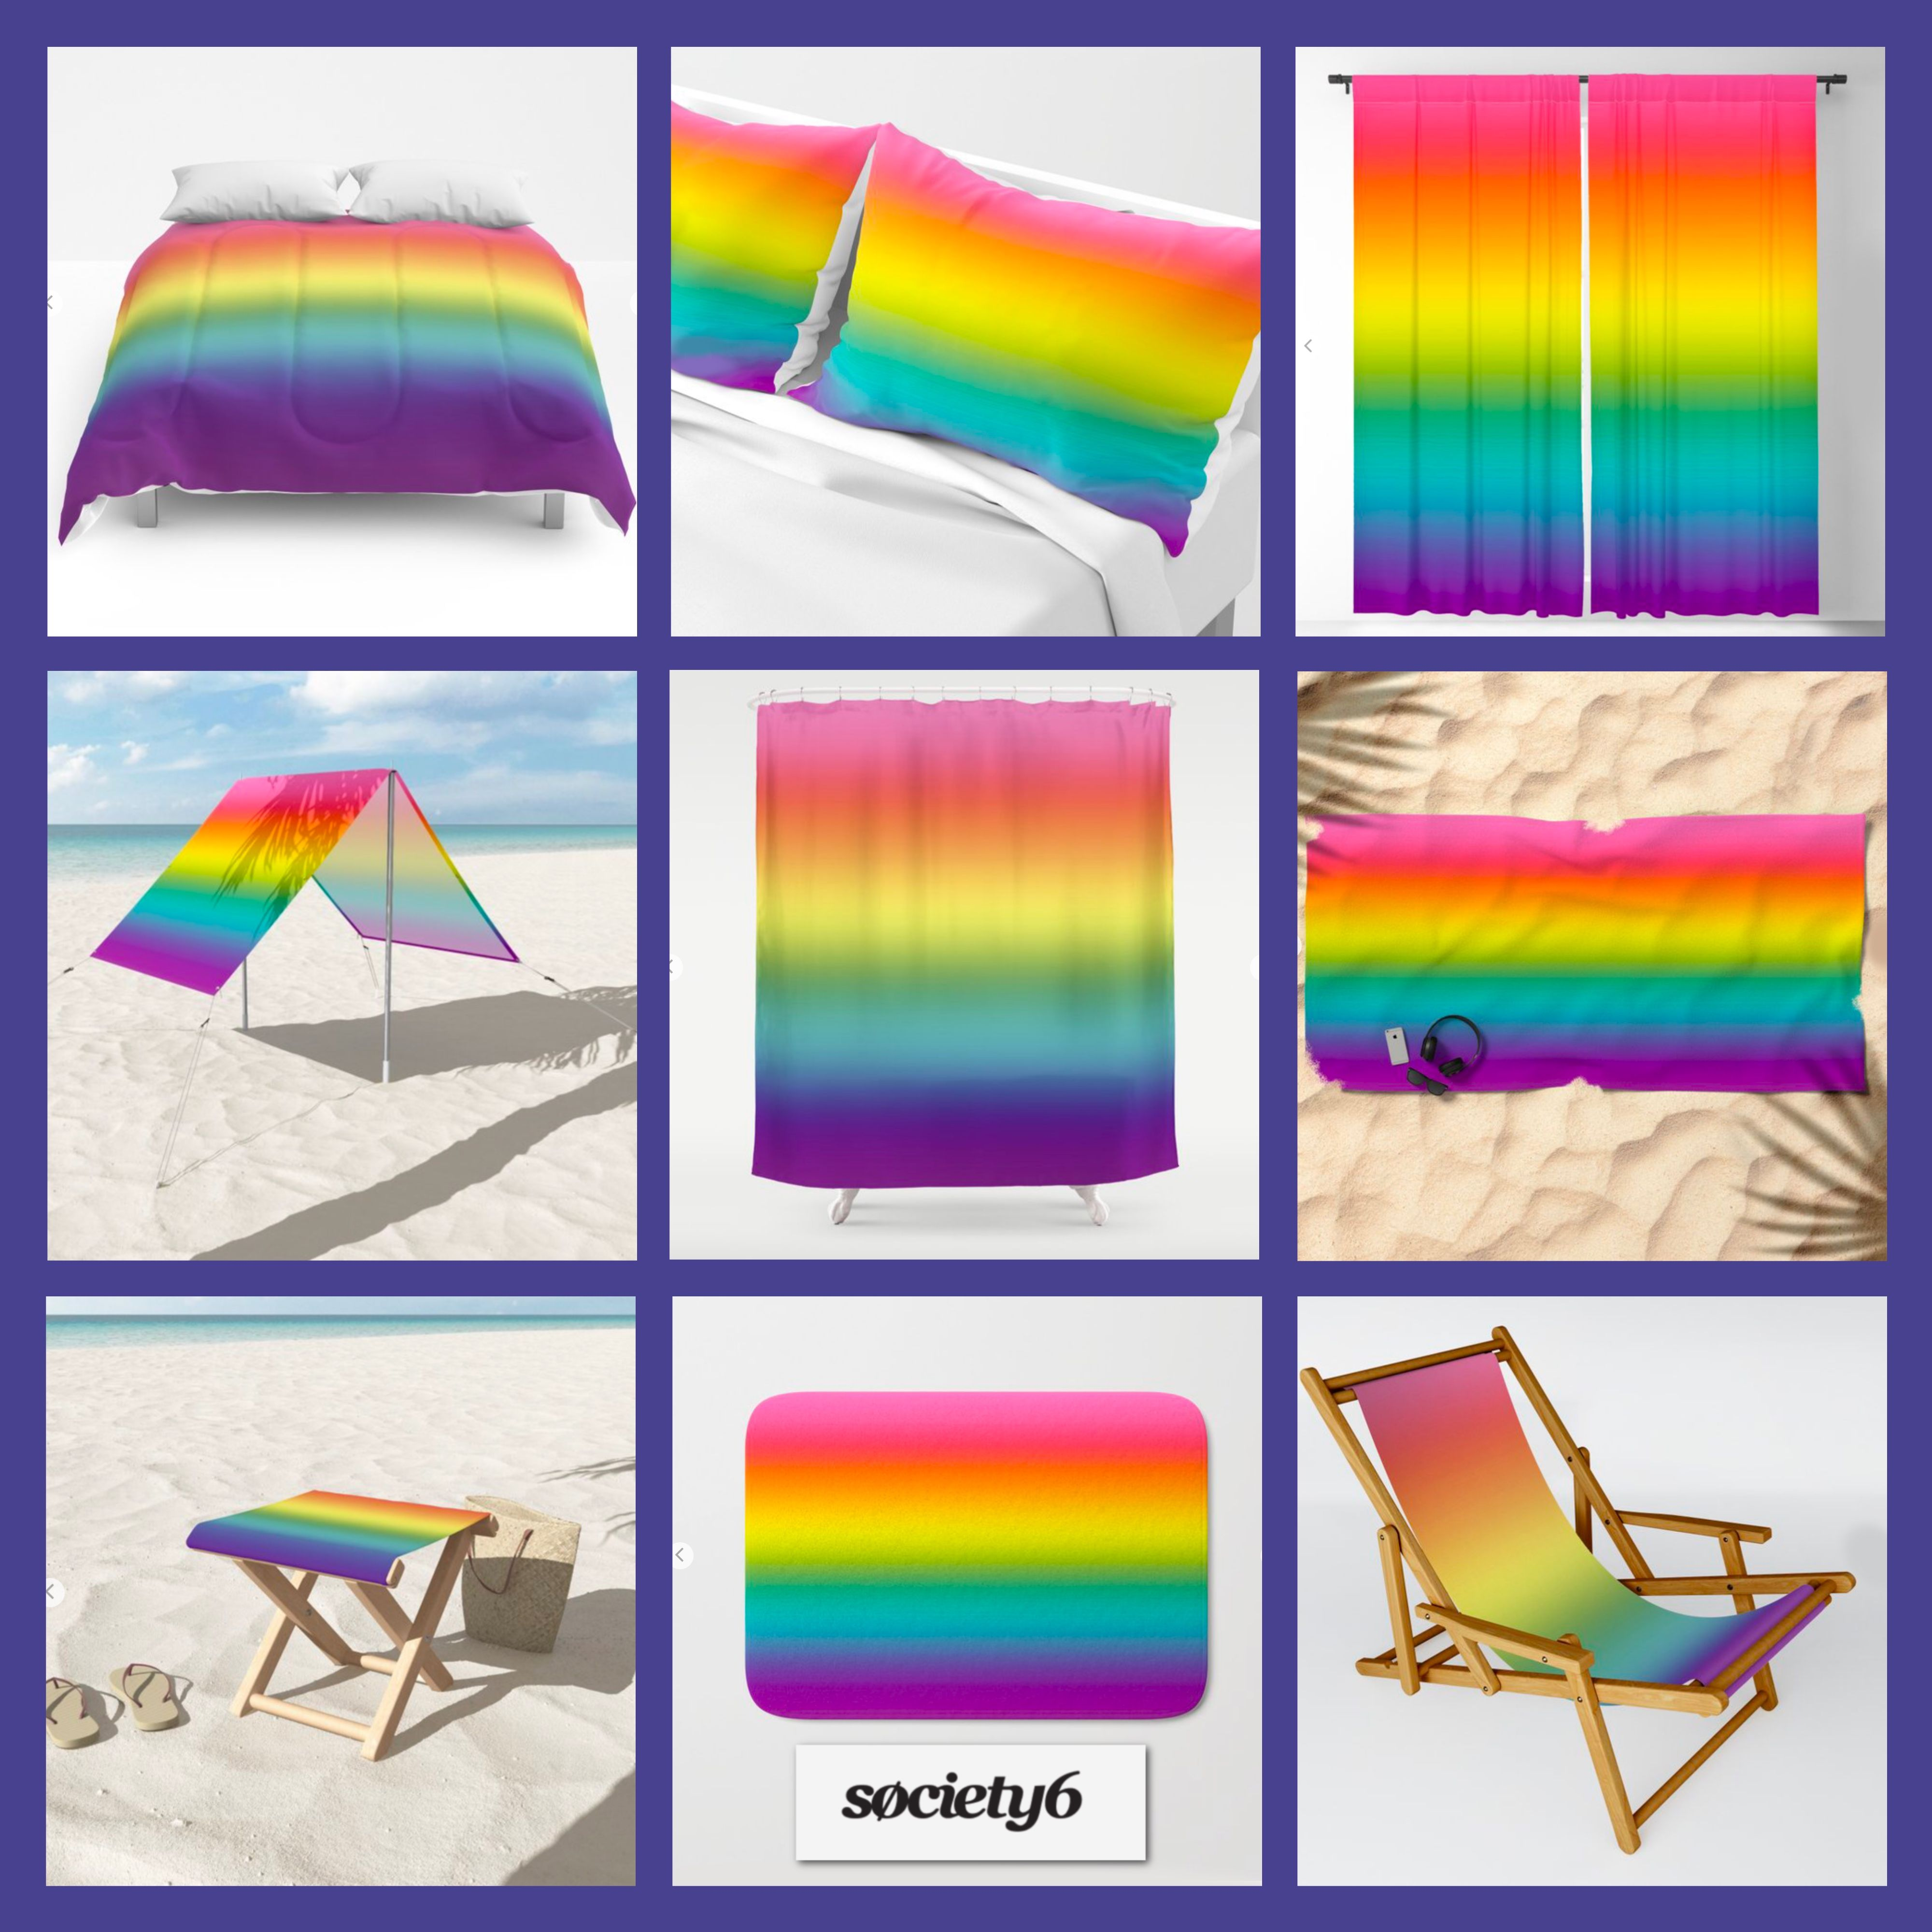 The Pride Rainbow Flag Created Into A Gradient Ombre Effect The